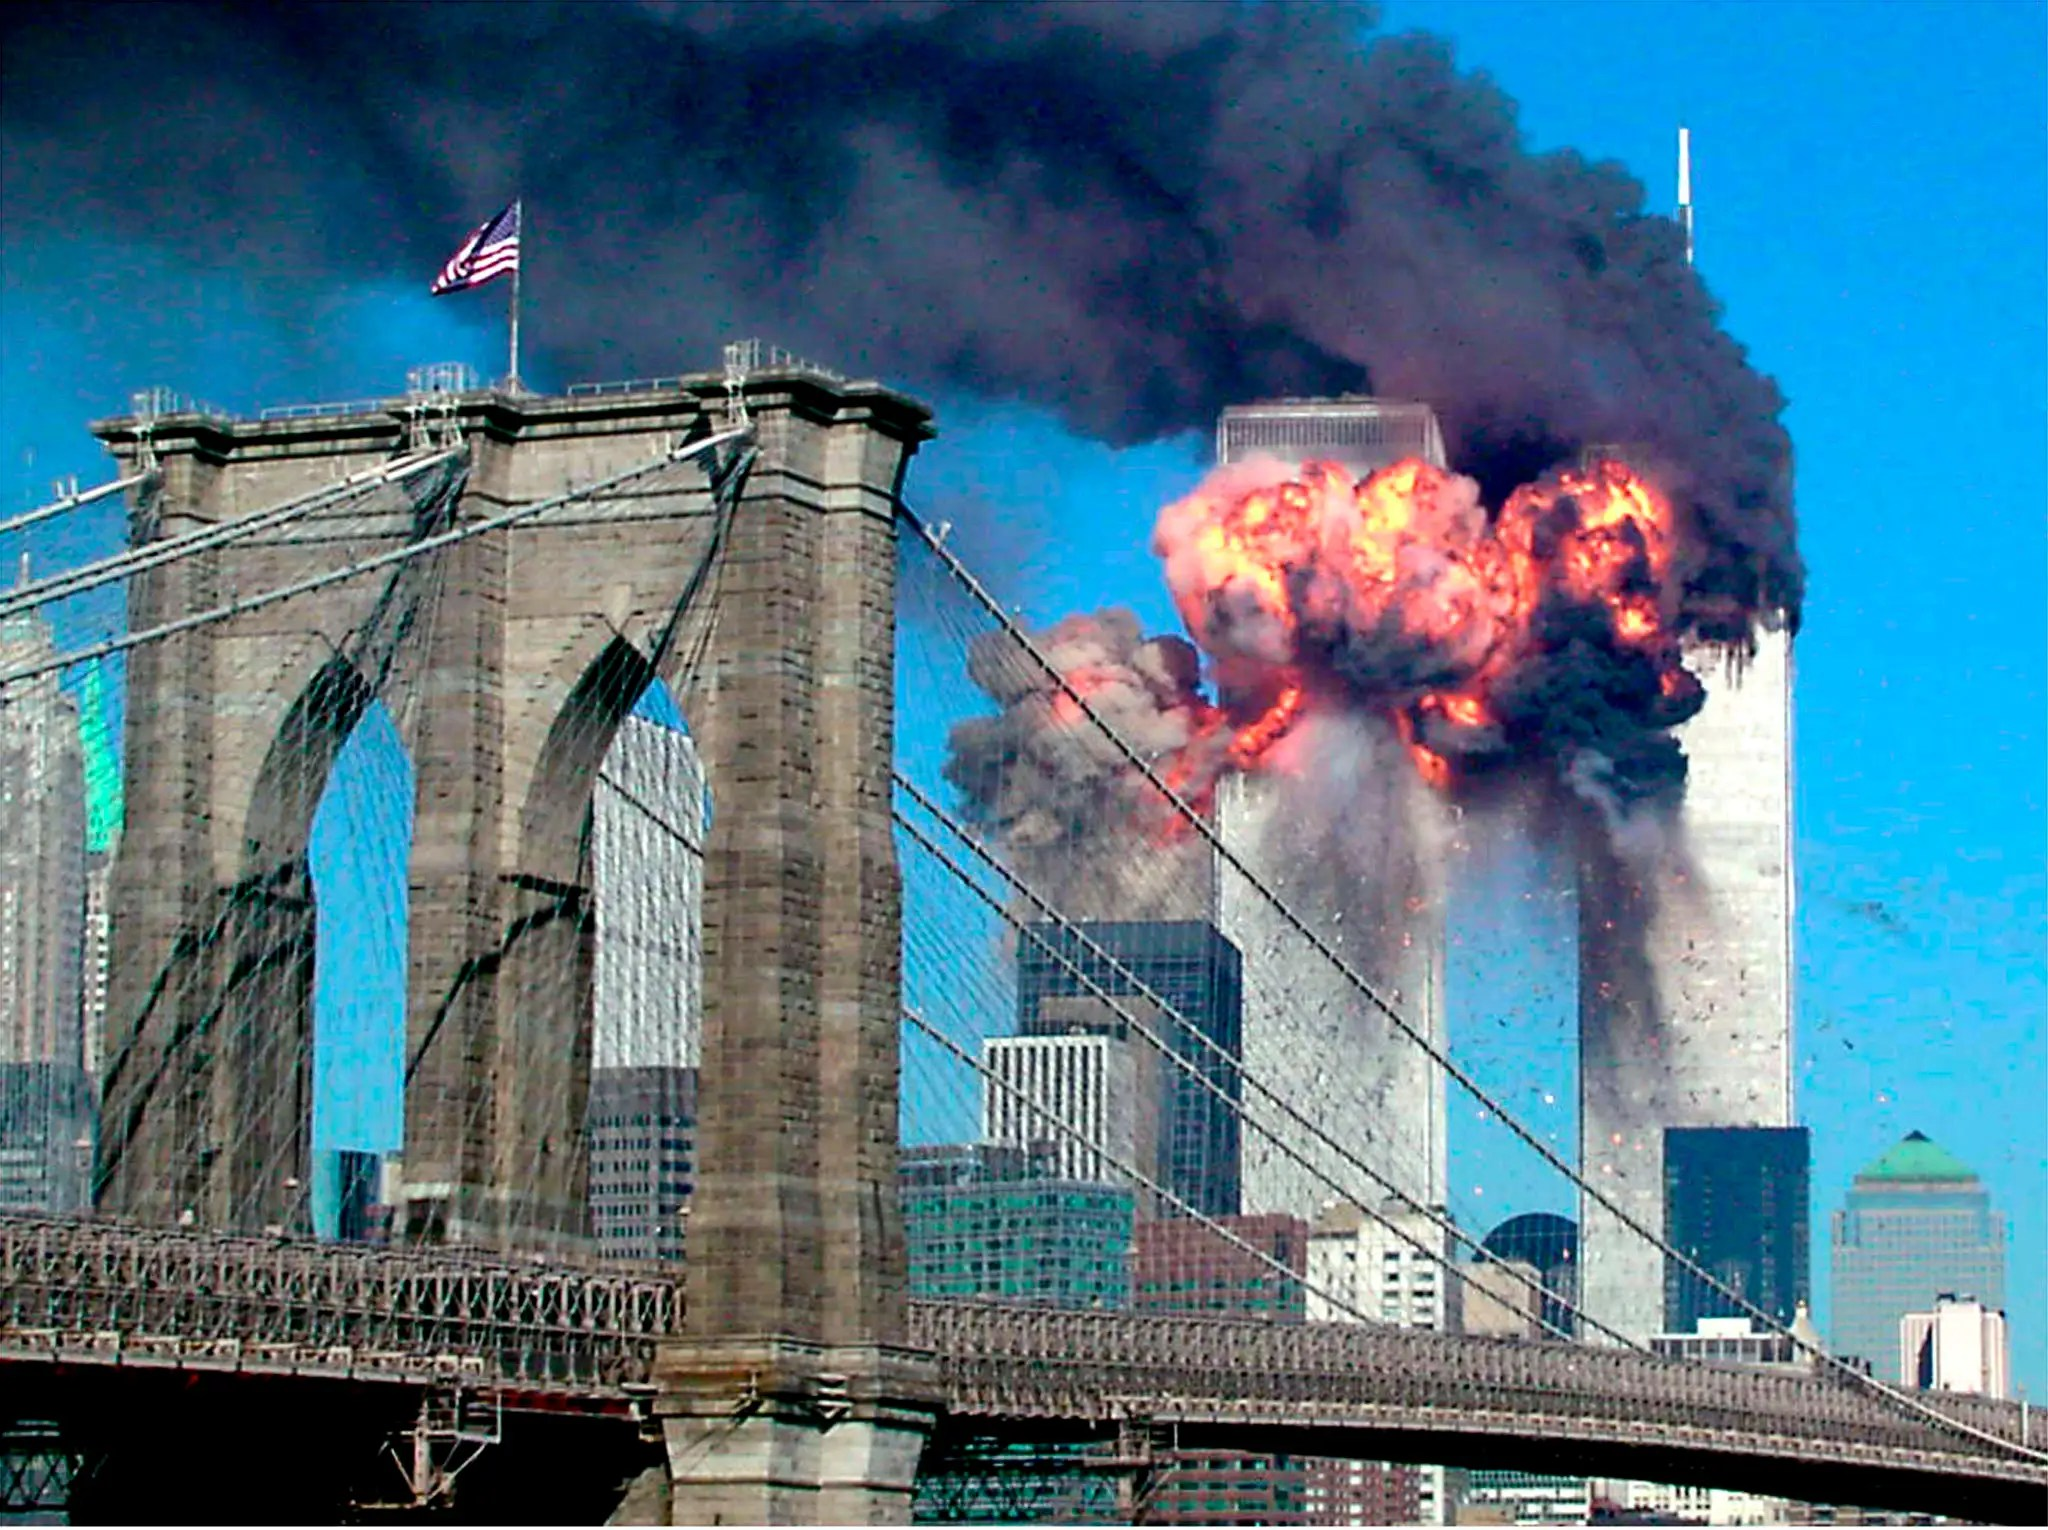 An image from the 9/11 or Al-Qaeda attacks on New York and Washington in September 2001